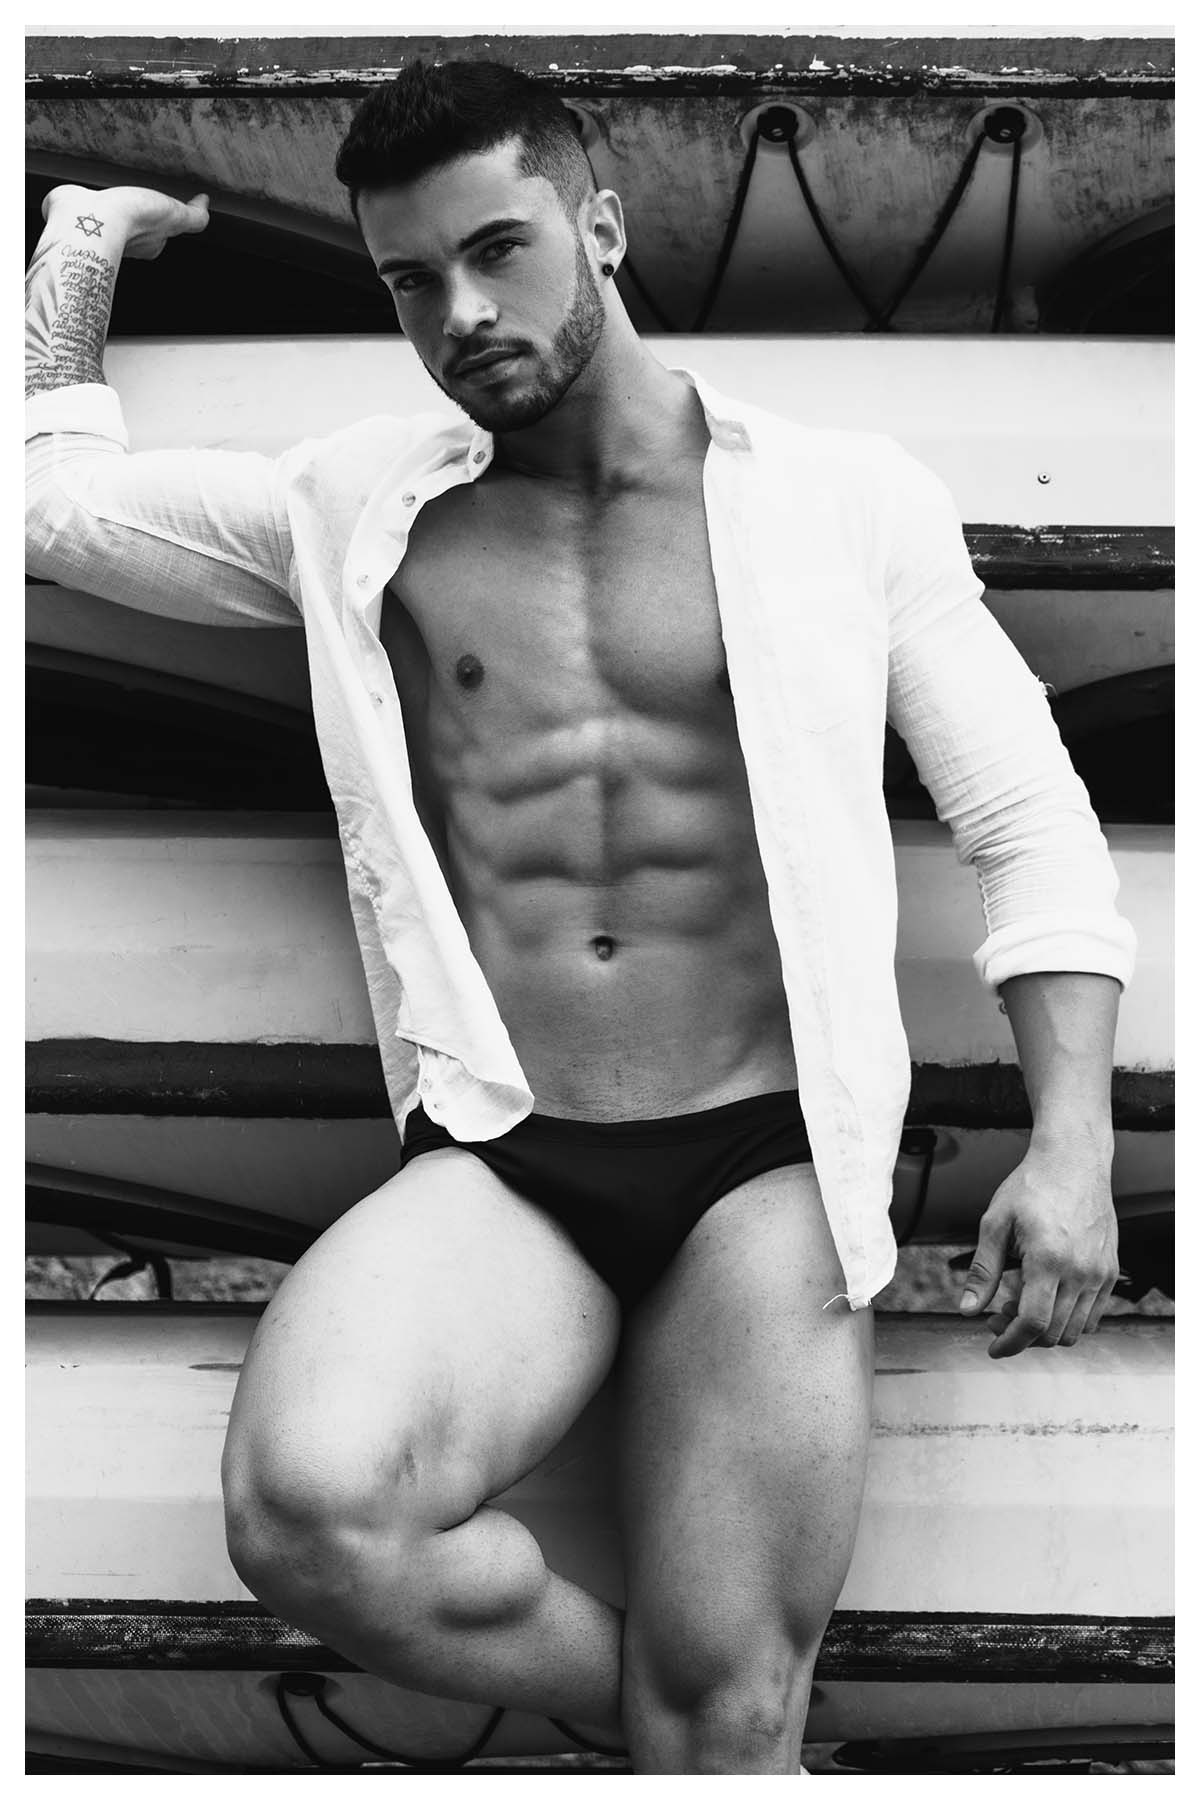 Douglas Candido by Olavo Martins for Brazilian Male Model